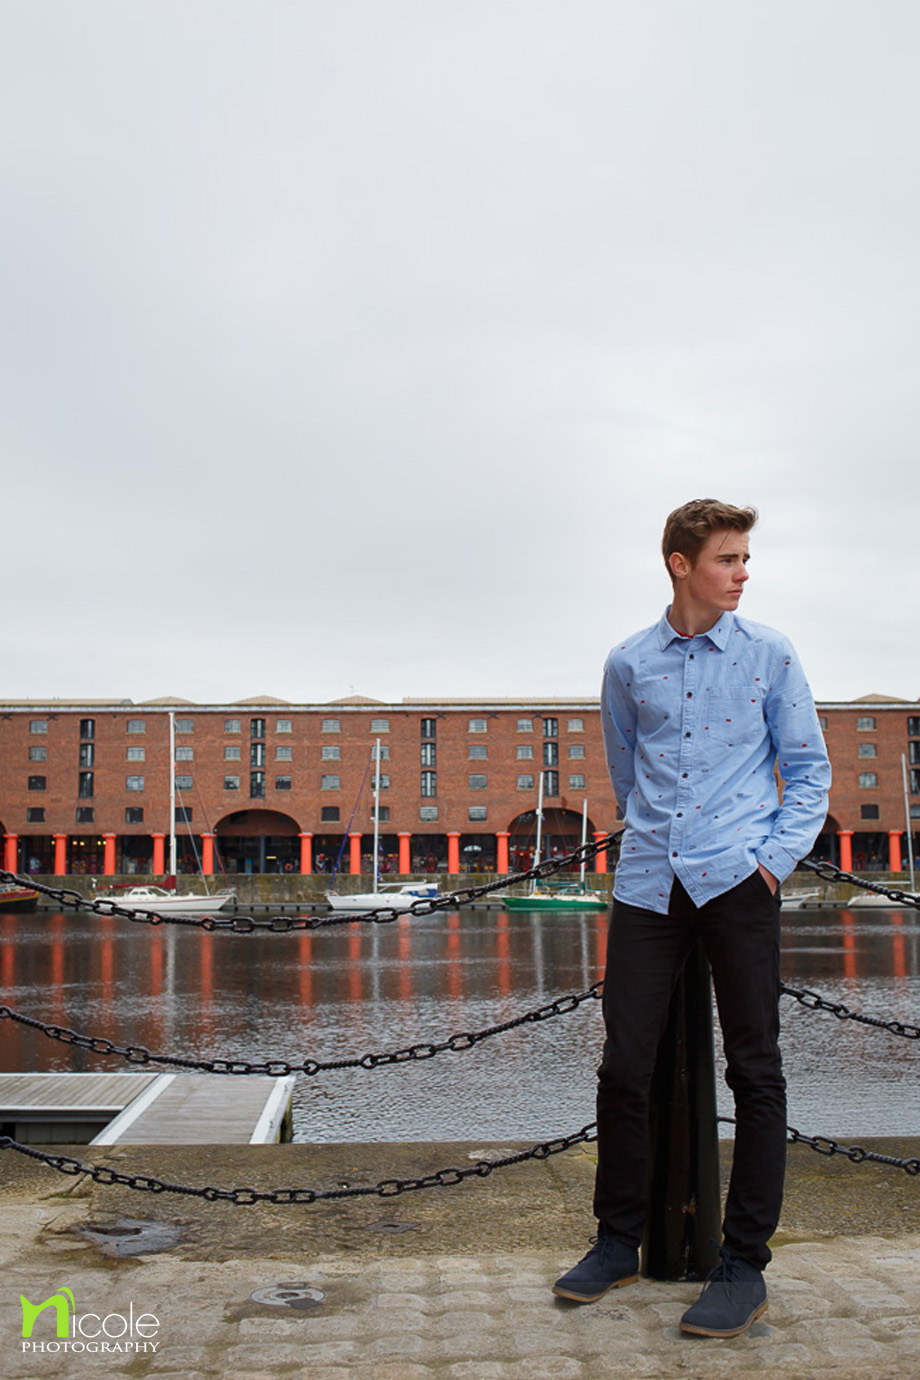 Alex the Docklands Liverpool Nicole photography